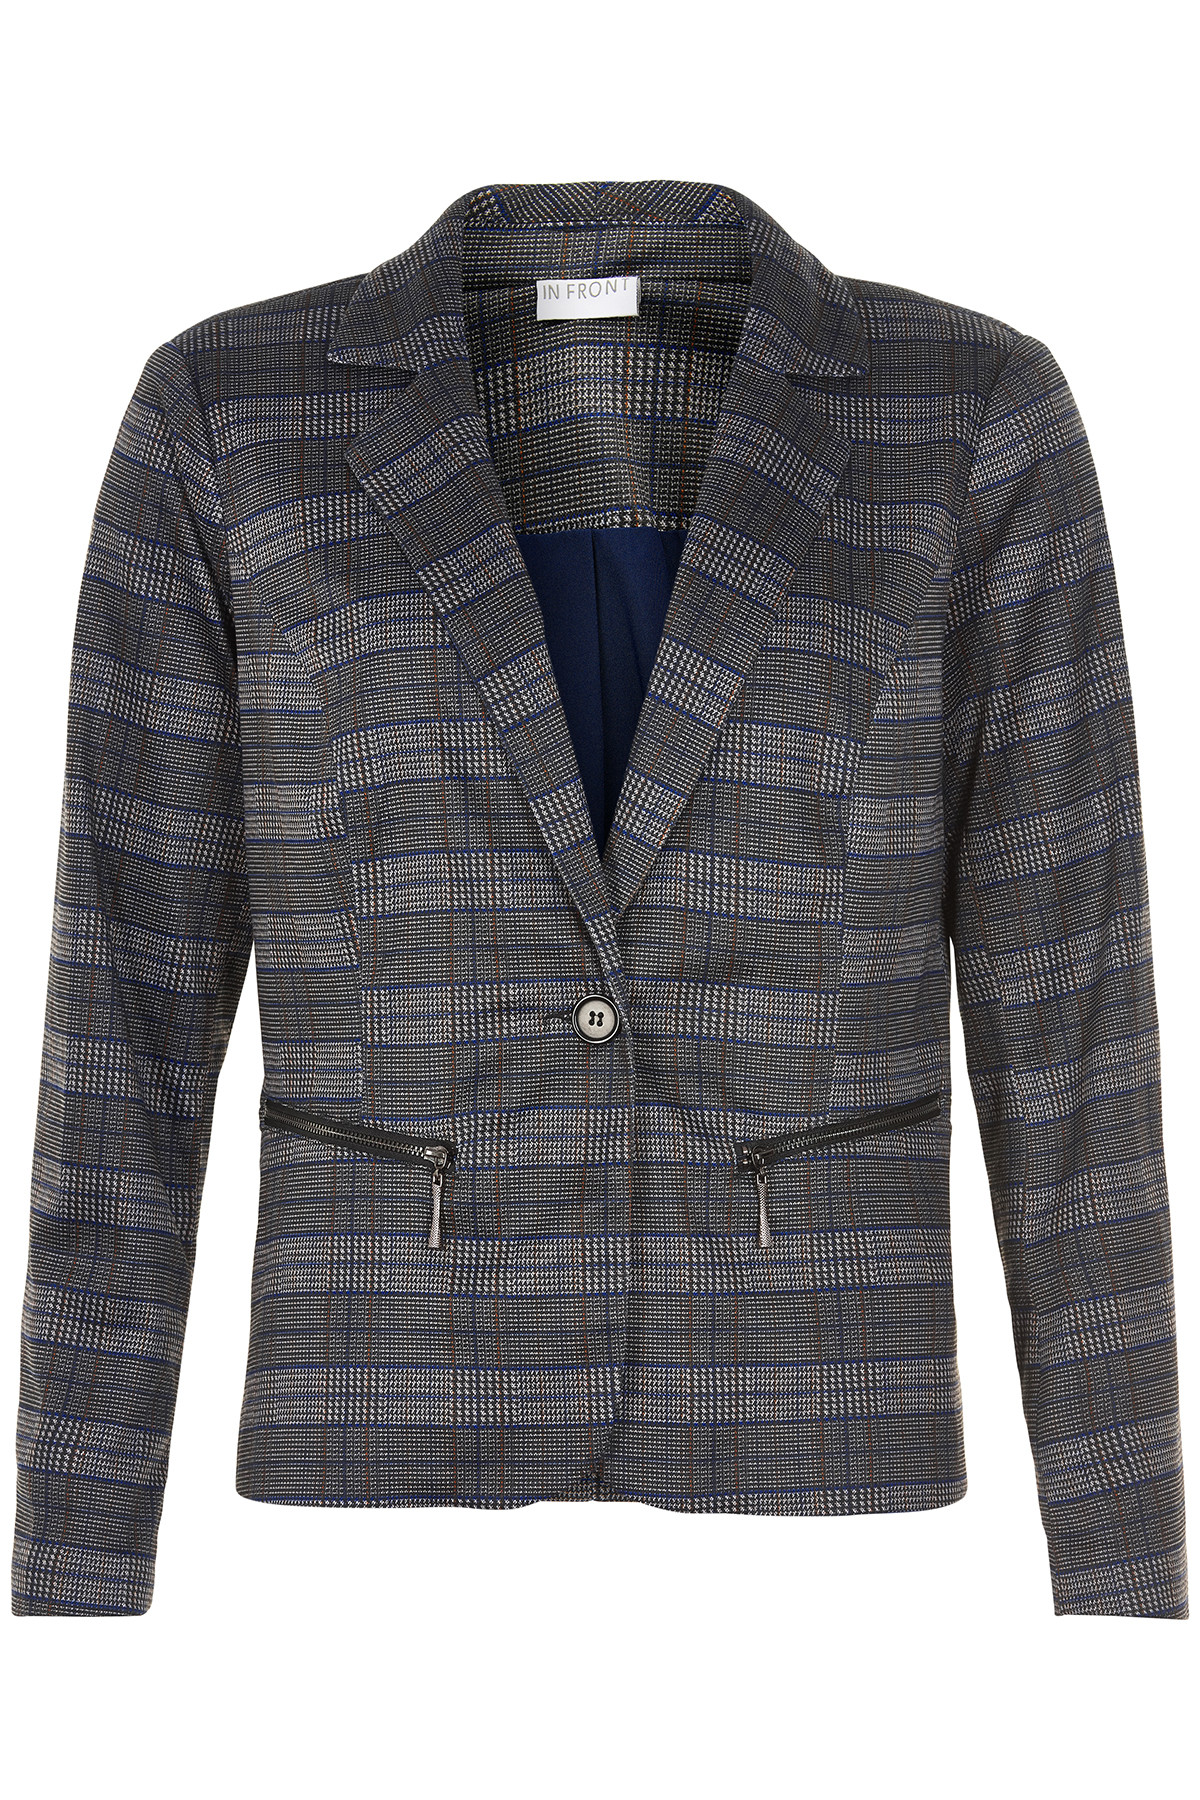 Image of   IN FRONT ASTRID CHECKED JAKKE 12846 (Night Blue 590, XL)